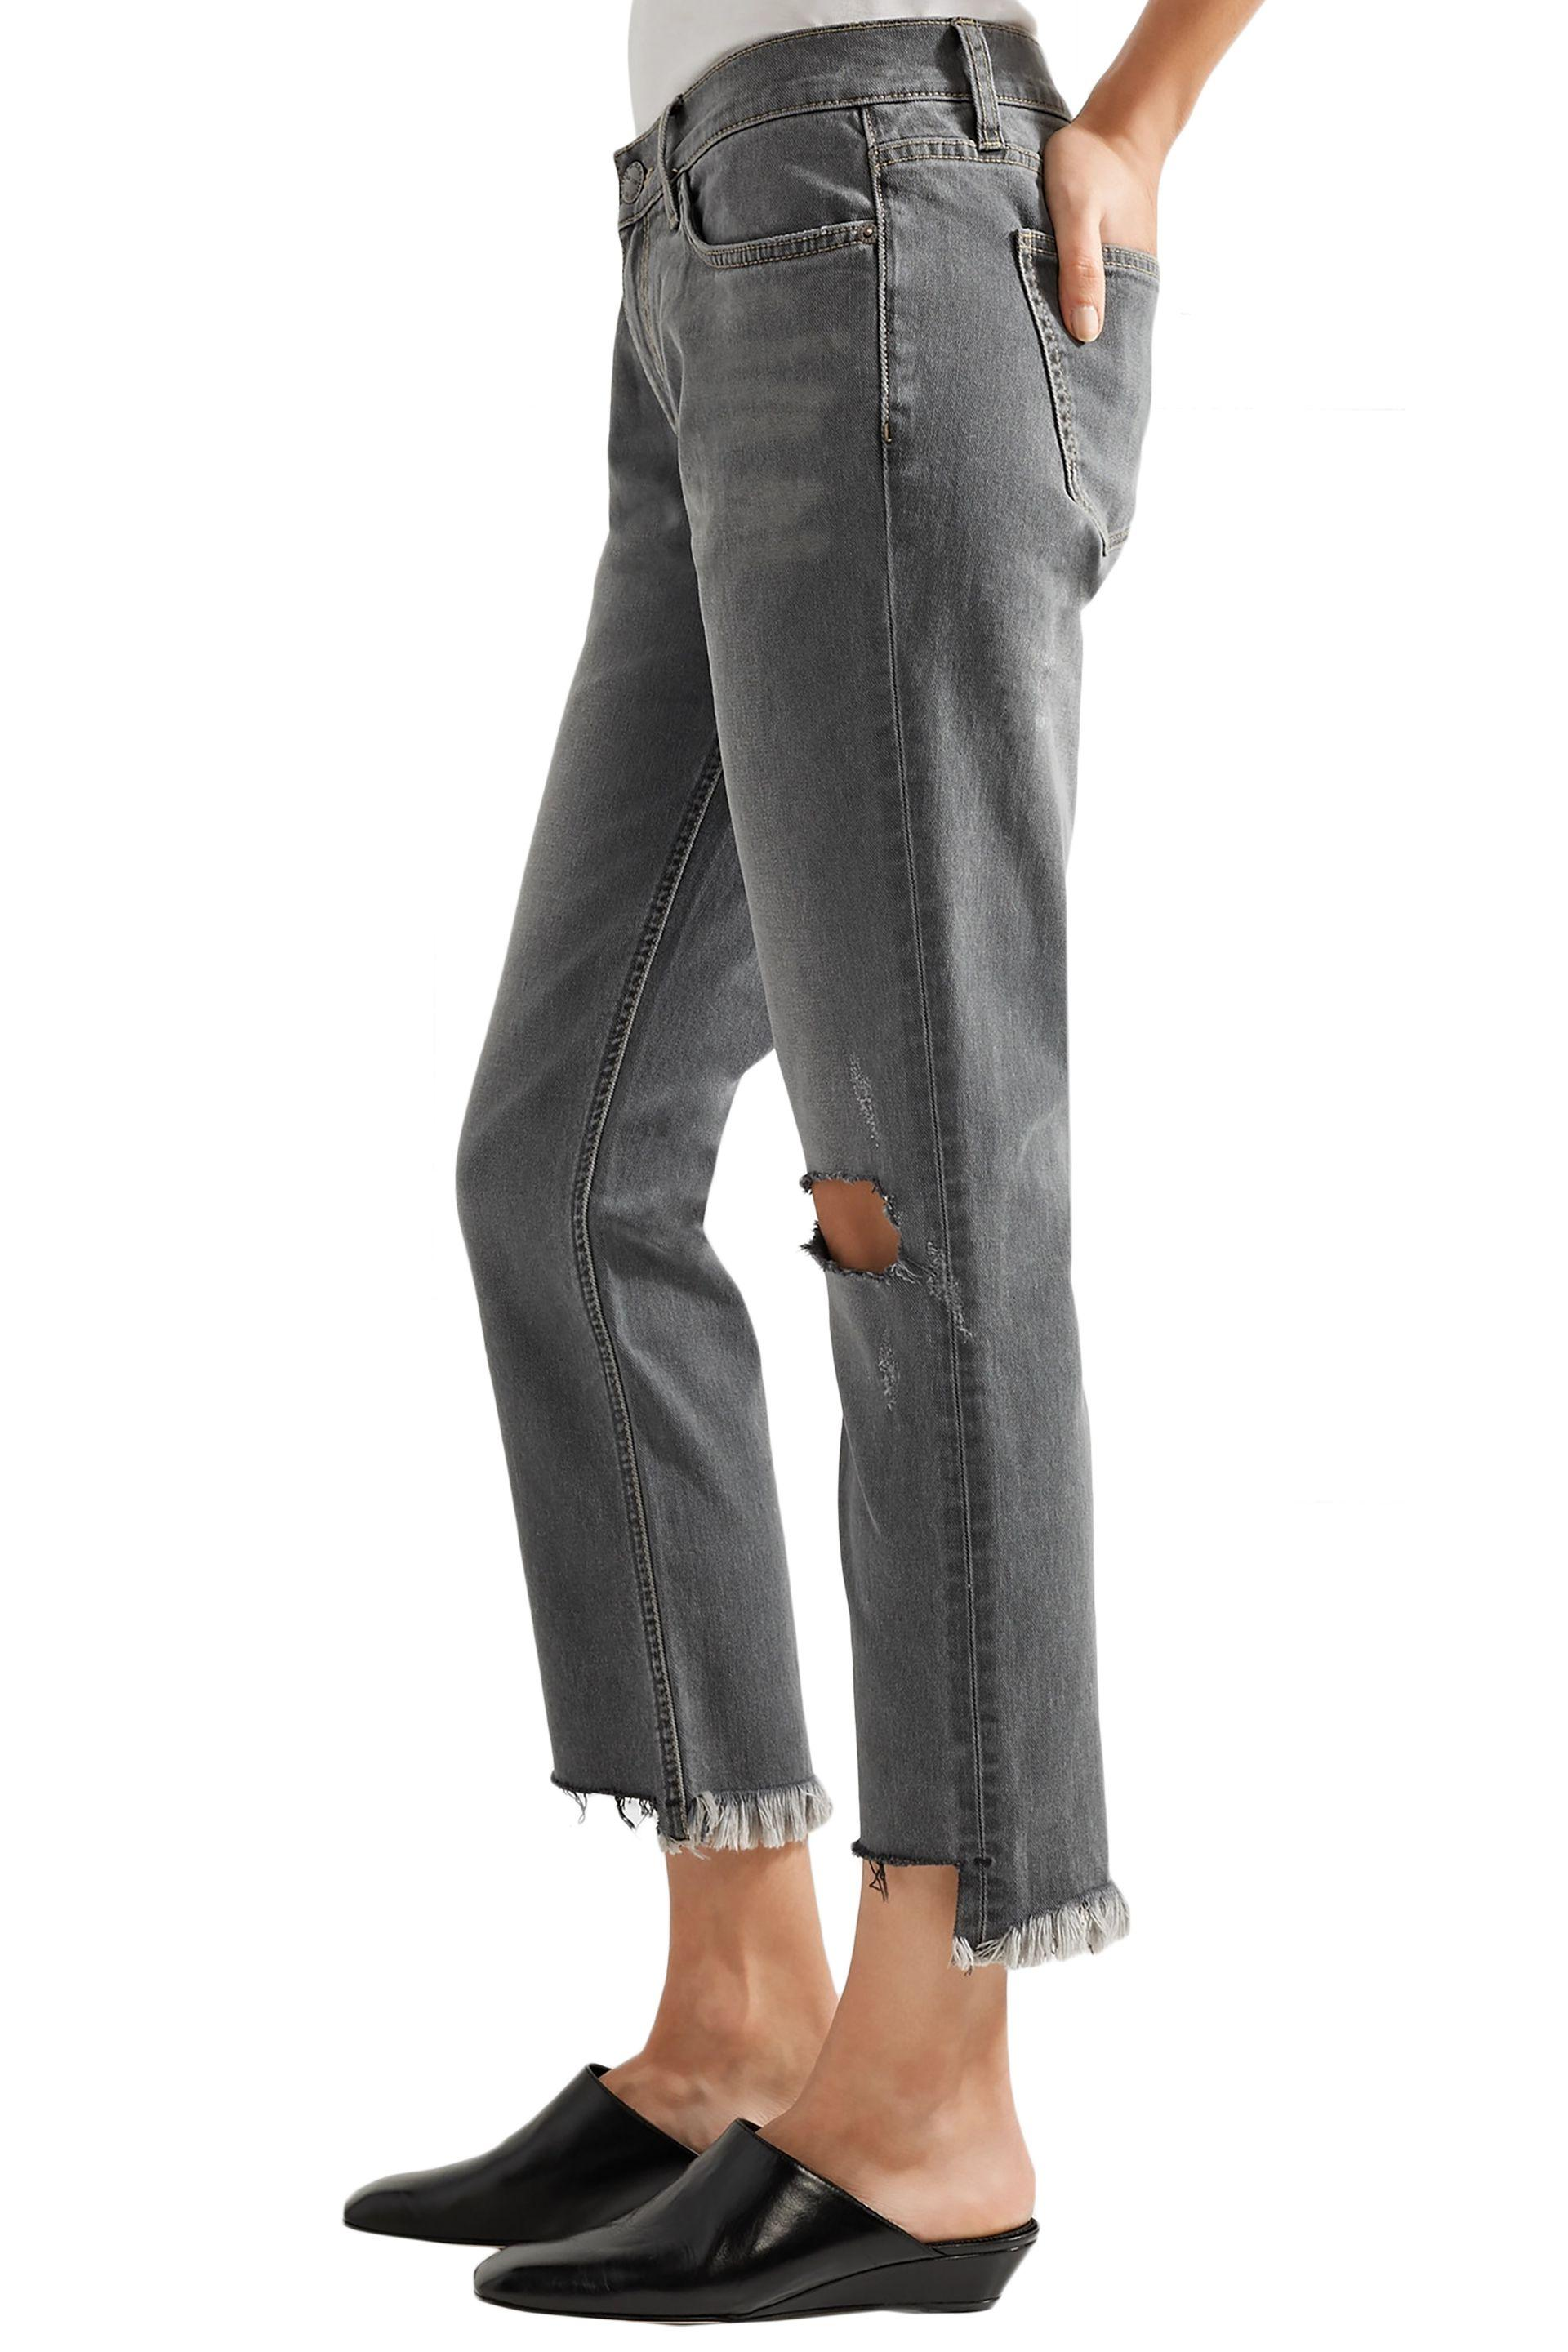 Current/Elliott Denim The Cropped Distressed Mid-rise Straight-leg Jeans Gray